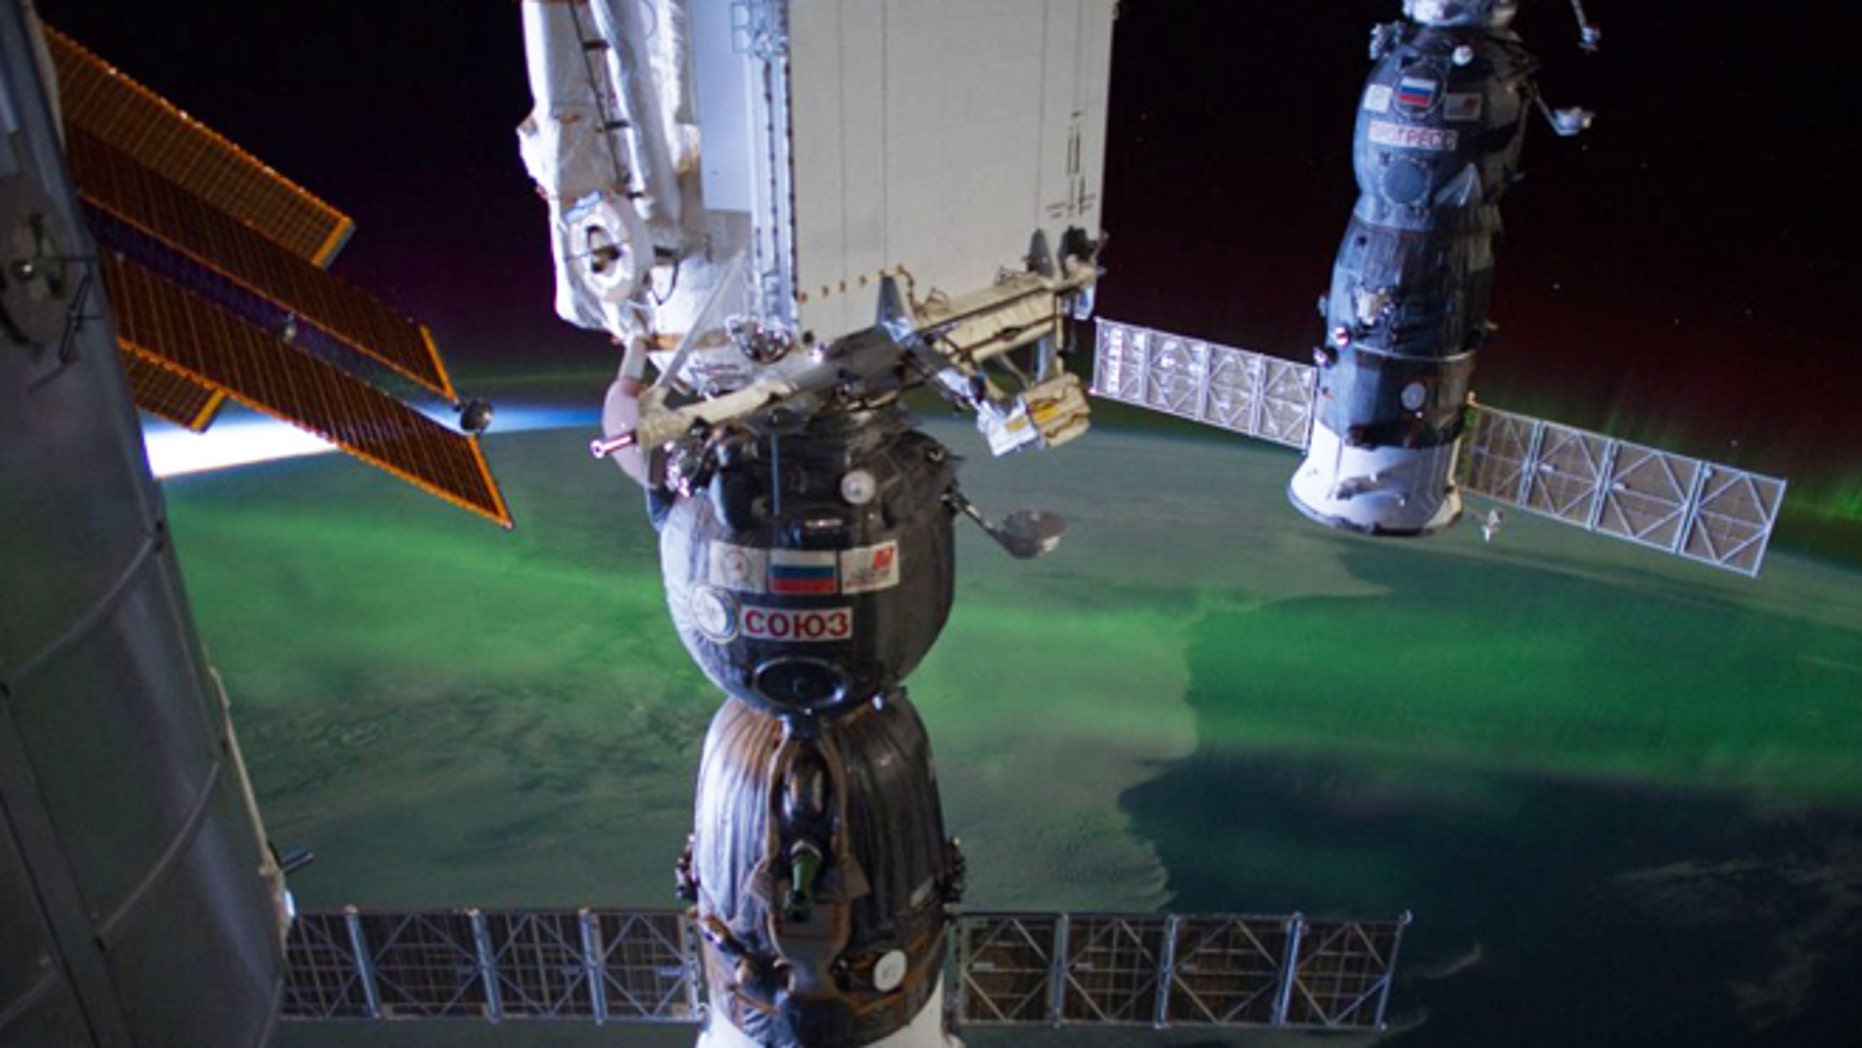 """Astronaut Don Pettit tweeted this photo on March 27, 2012. He wrote: """"1 millionth ISS photo. Part of time lapse series. Not sure who took it, Dan Burbank or myself. We can't remember."""""""